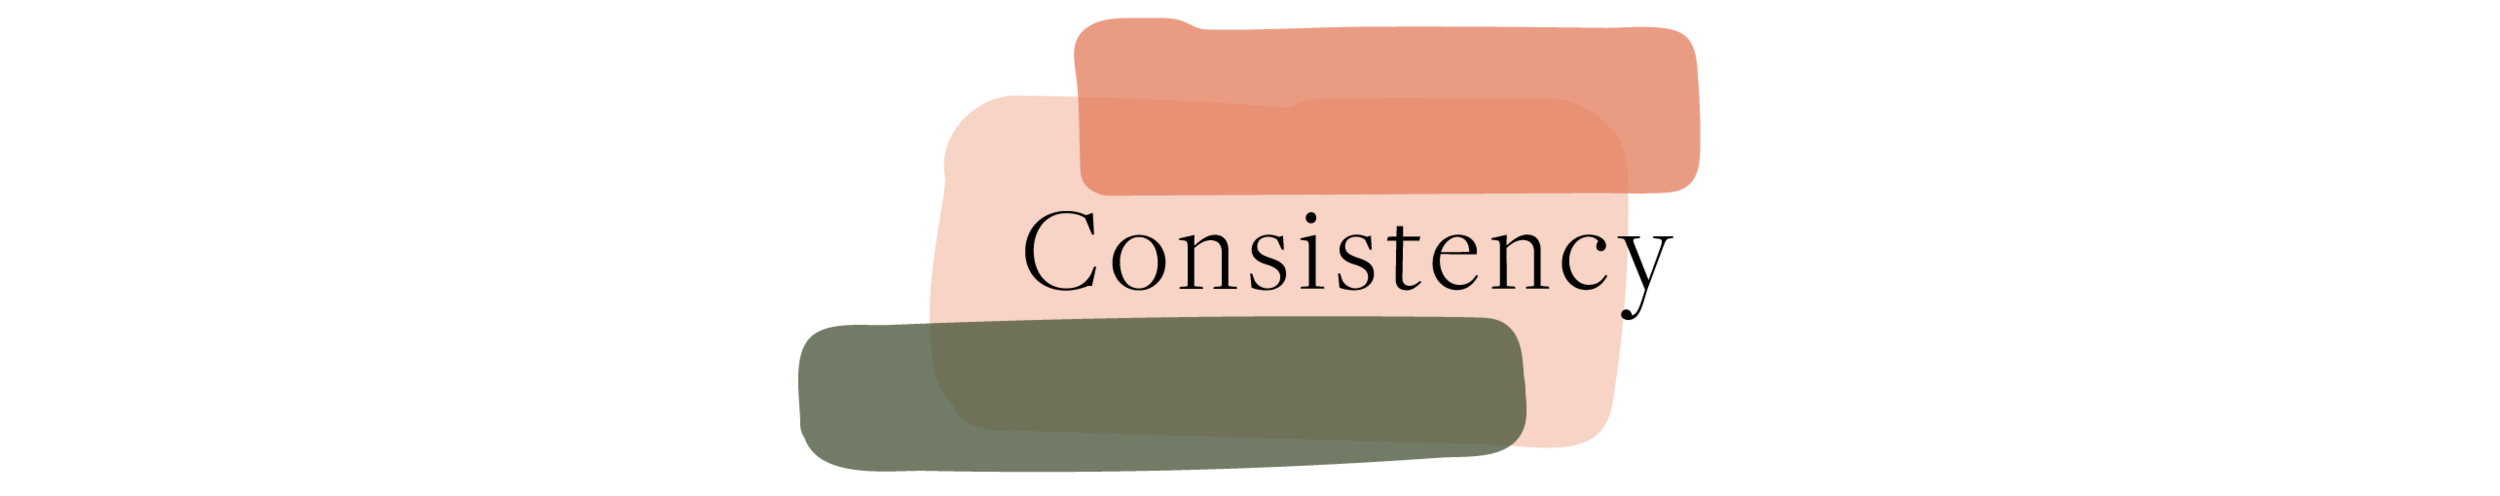 consistency-05.png